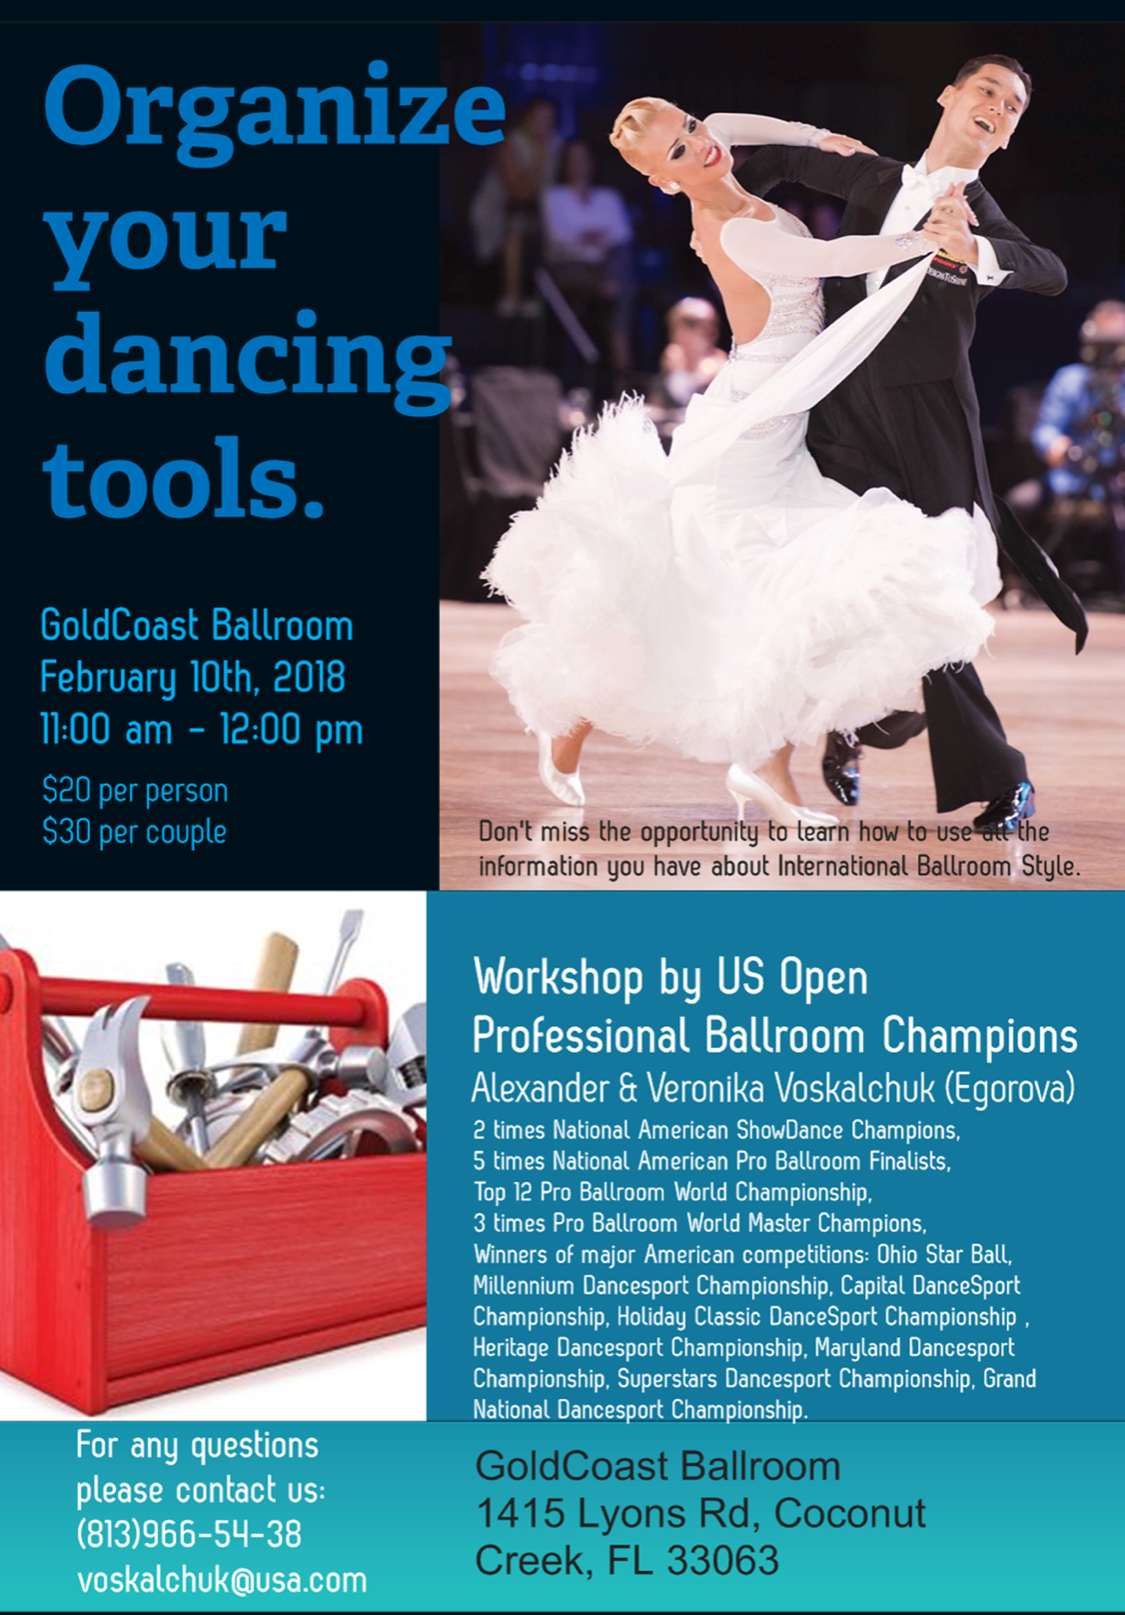 Alexander & Veronika Voskalchuk (Egorova) - Special Master Workshop - Saturday, February 10, 2018 - 11 AM - Noon - at Goldcoast Ballroom!